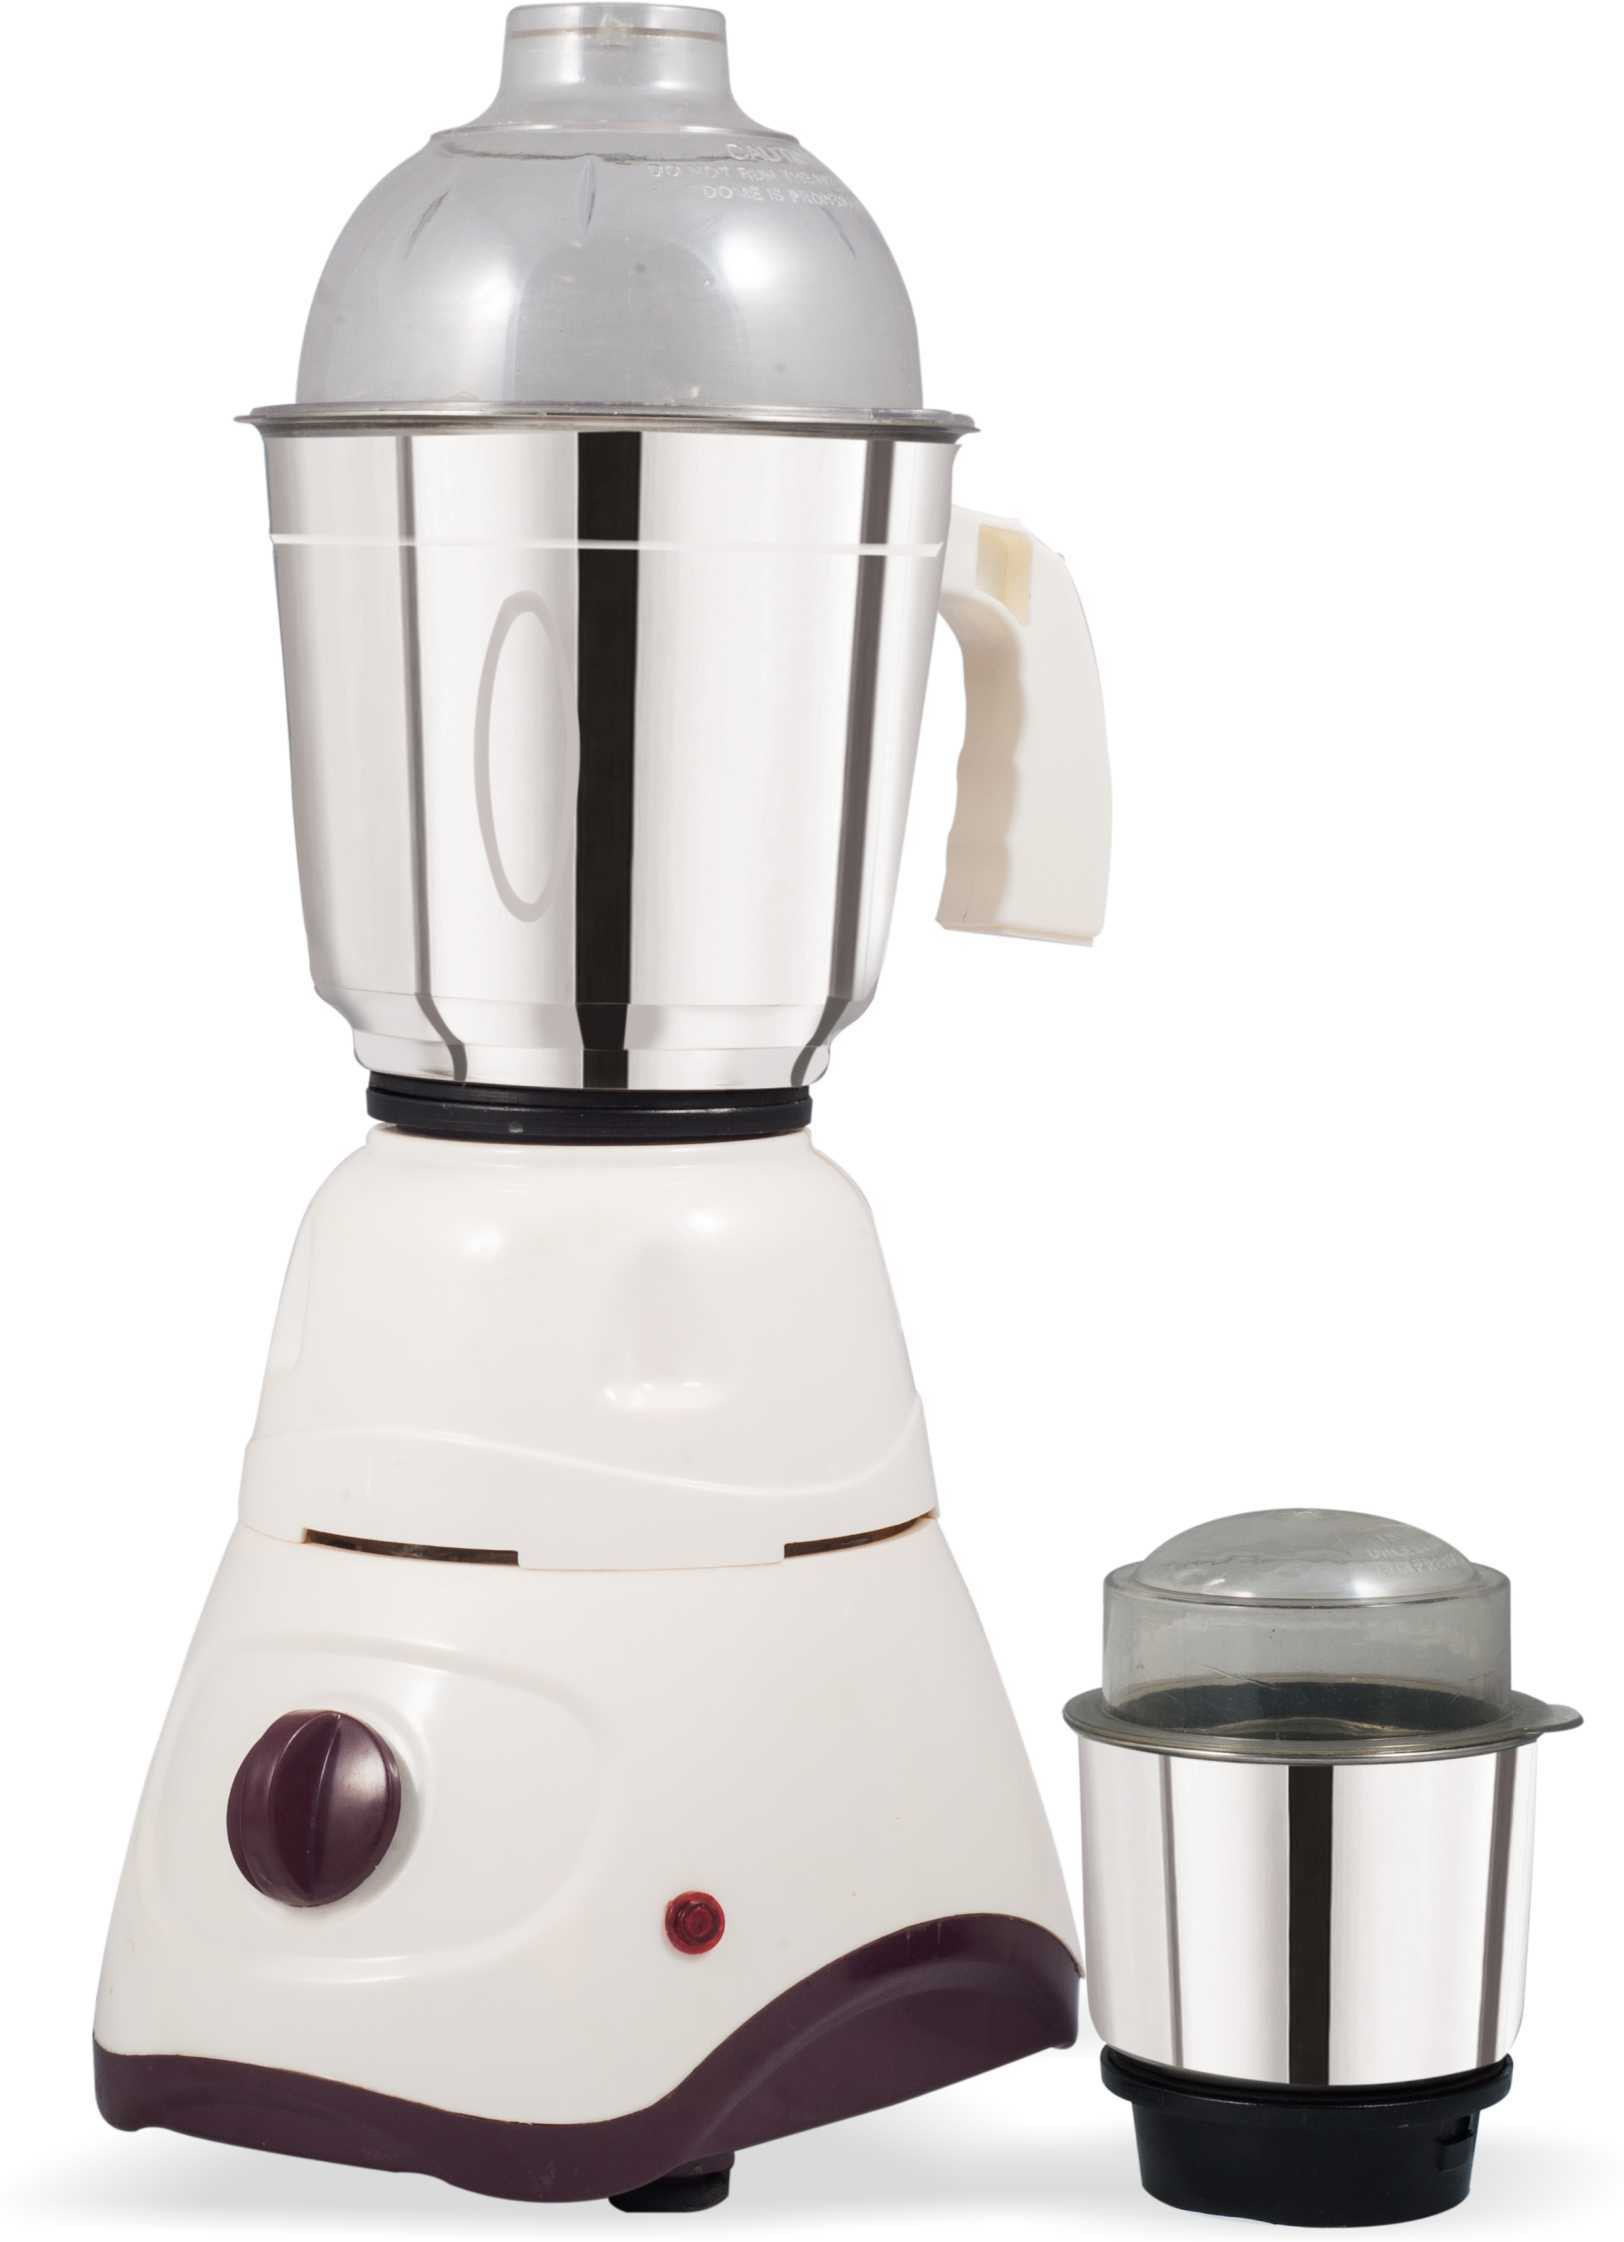 Sphere TURBO 450 W Mixer Grinder(White, Ivory, 2 Jars)